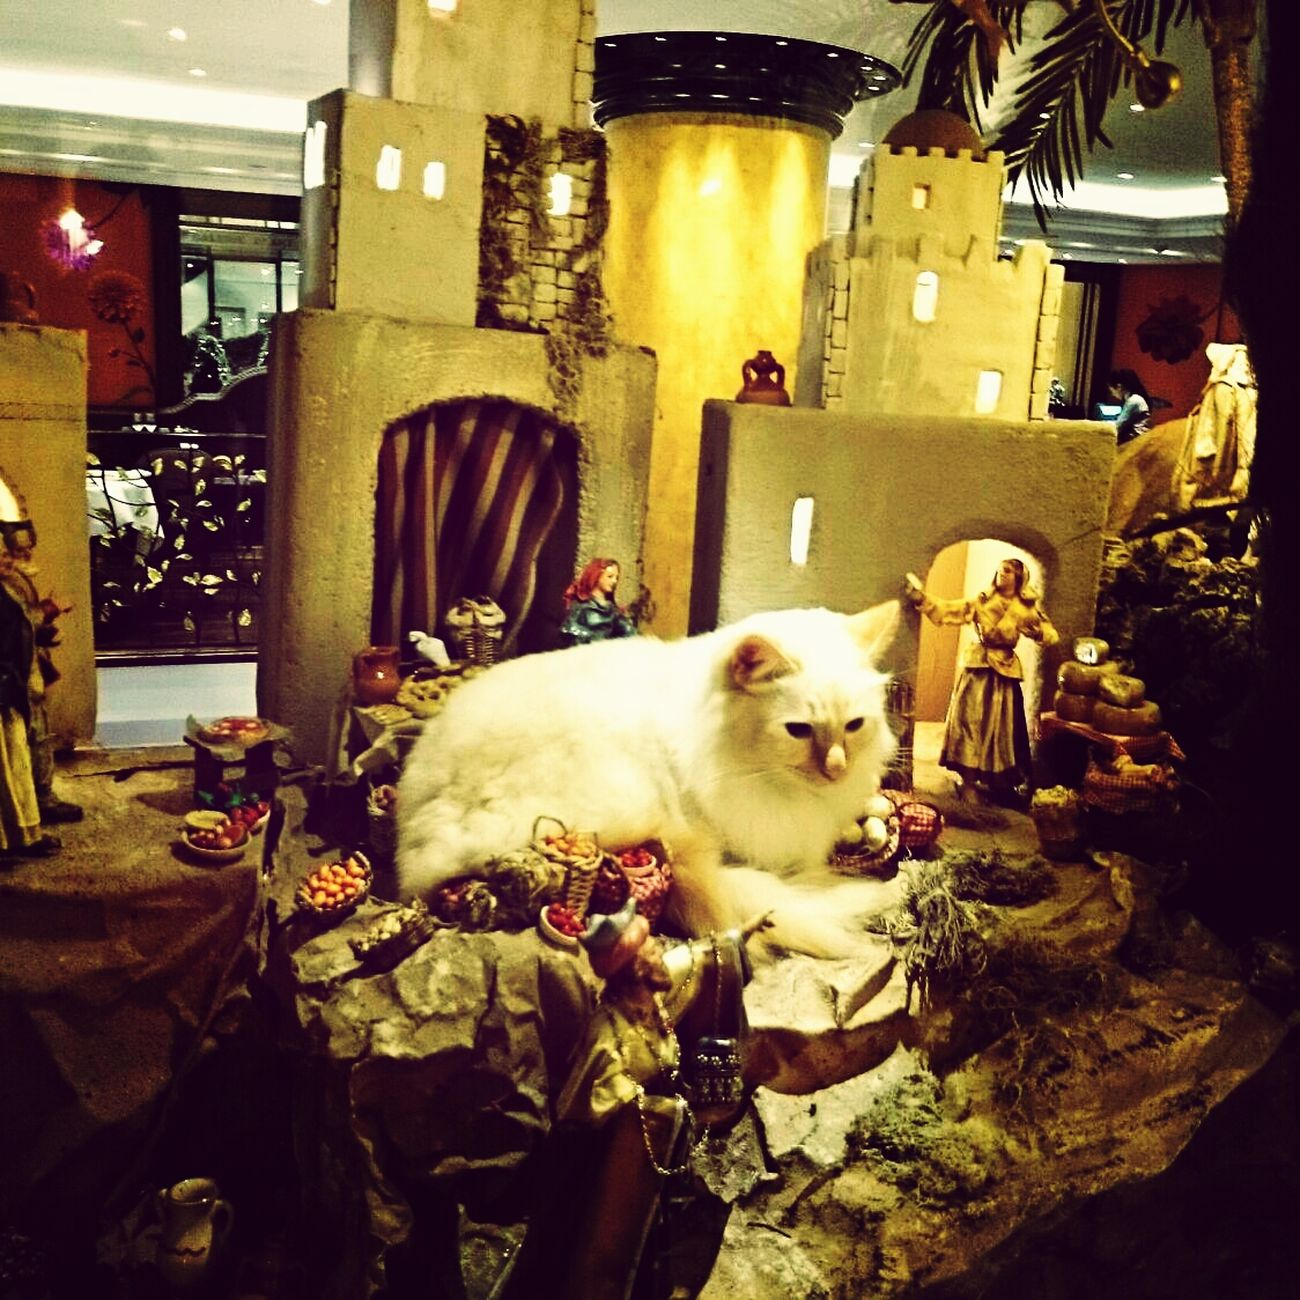 Paris Cat Hotel Le Bristol Paris Chrstmas:))